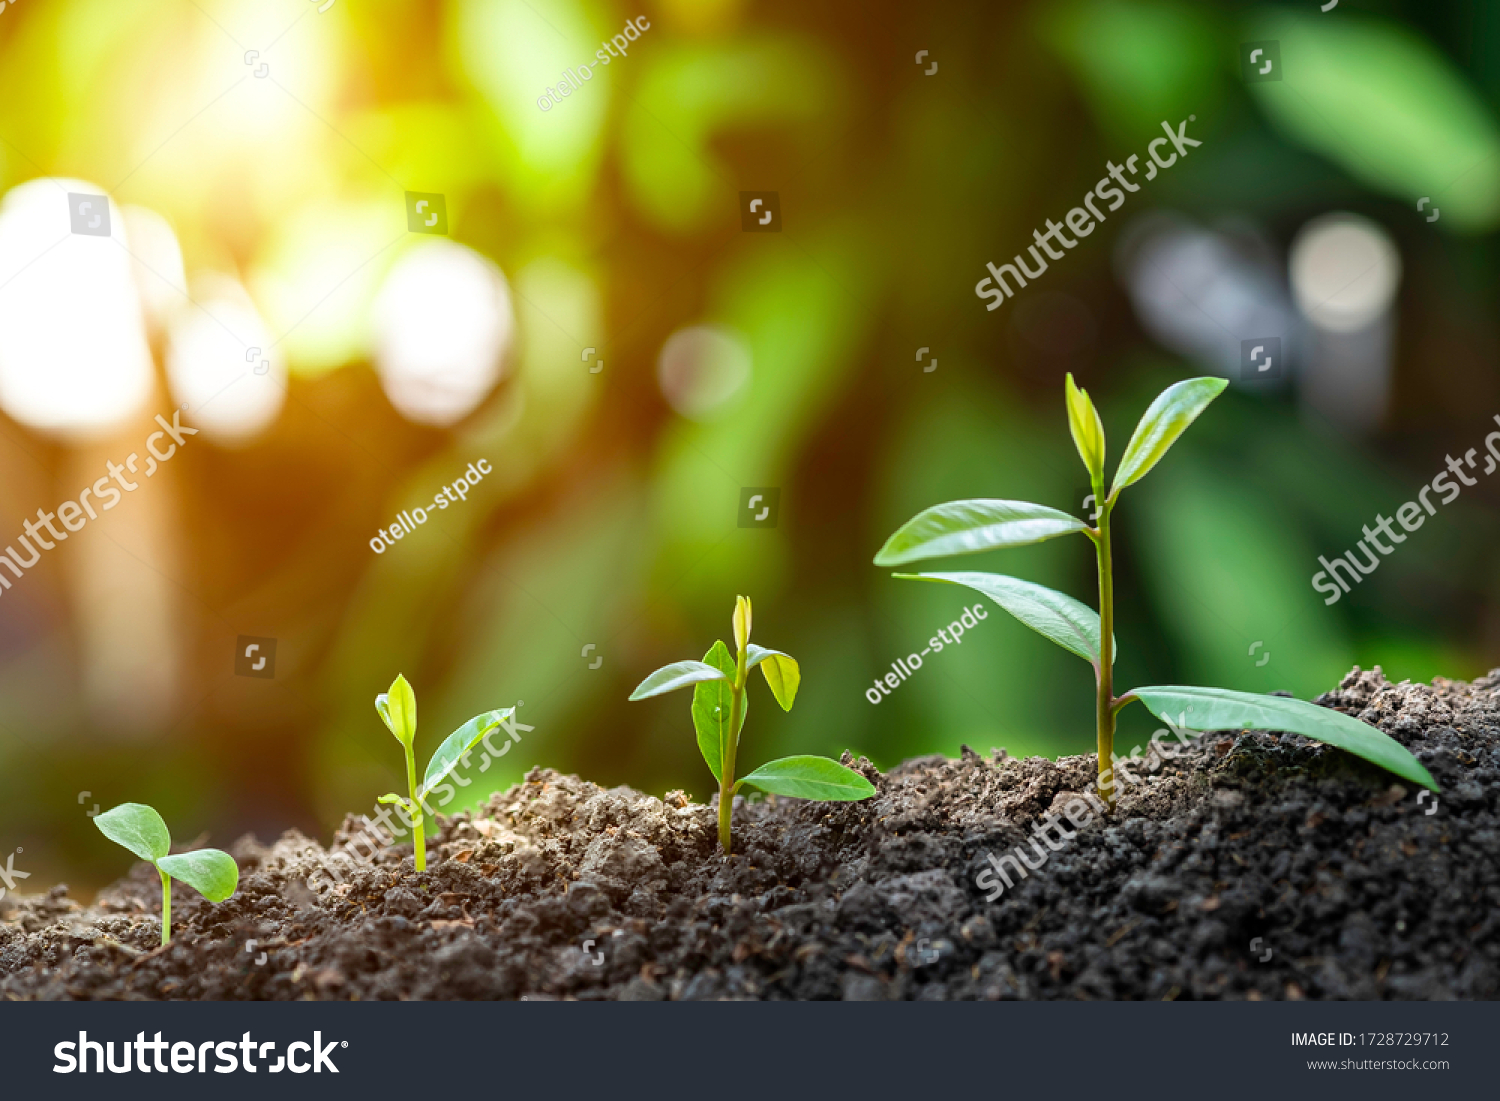 Agriculture and plant grow sequence with morning sunlight and dark green blur background. Germinating seedling grow step sprout growing from seed. Nature ecology and growth concept with copy space. #1728729712